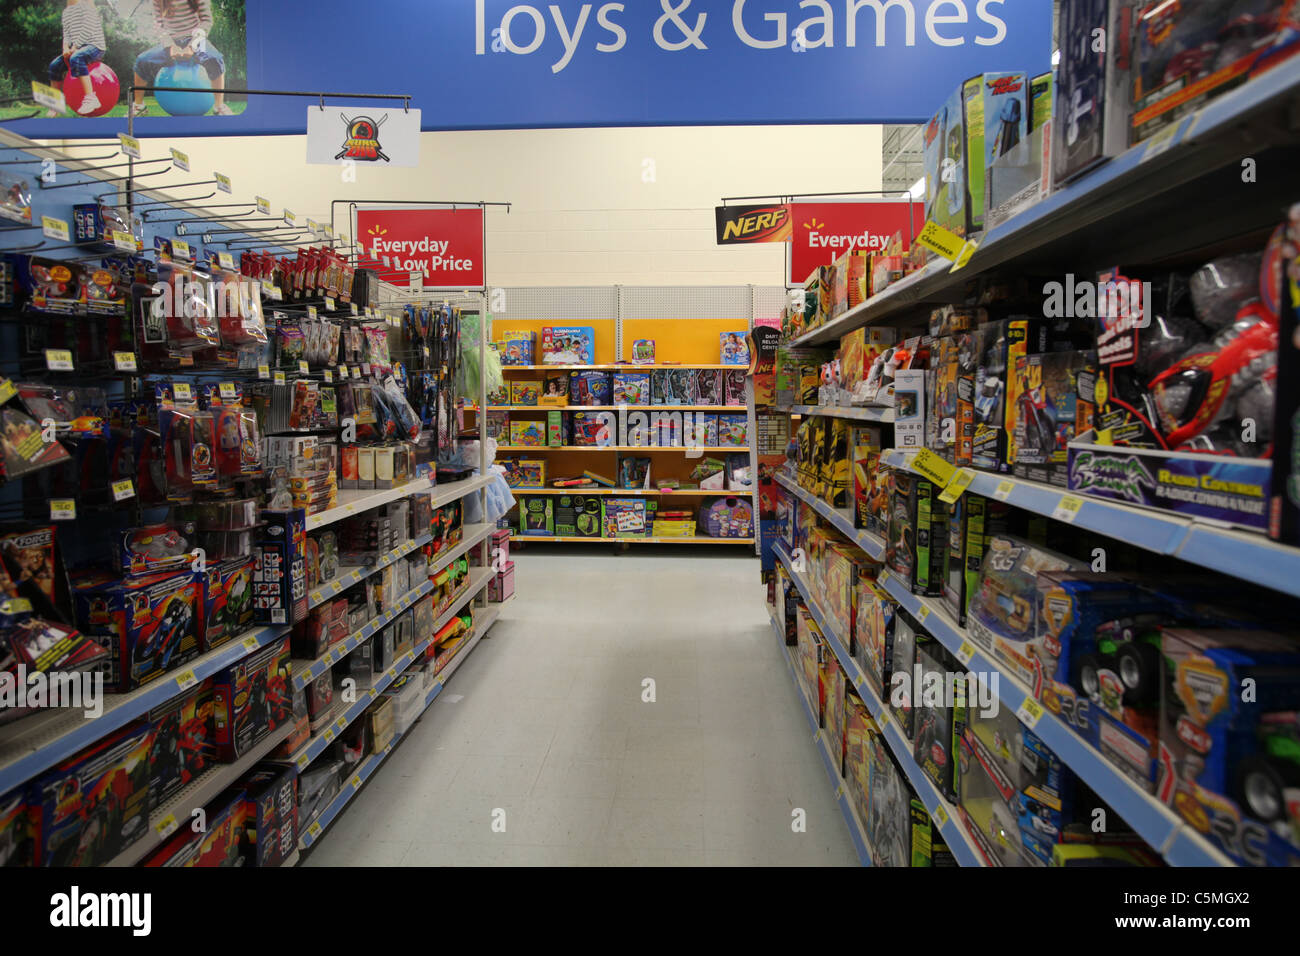 Walmart Toys and Games section in Walmart supercentre in Kitchener ...